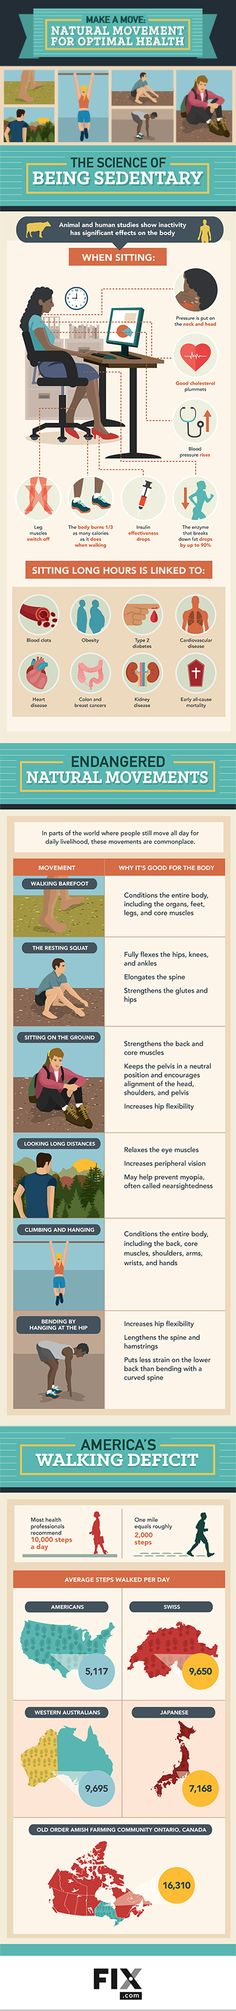 Do you spend many of your days in a sedentary job, and then try to hit the trail? Plan time in your day for movement, and you'll be a stronger hiker.